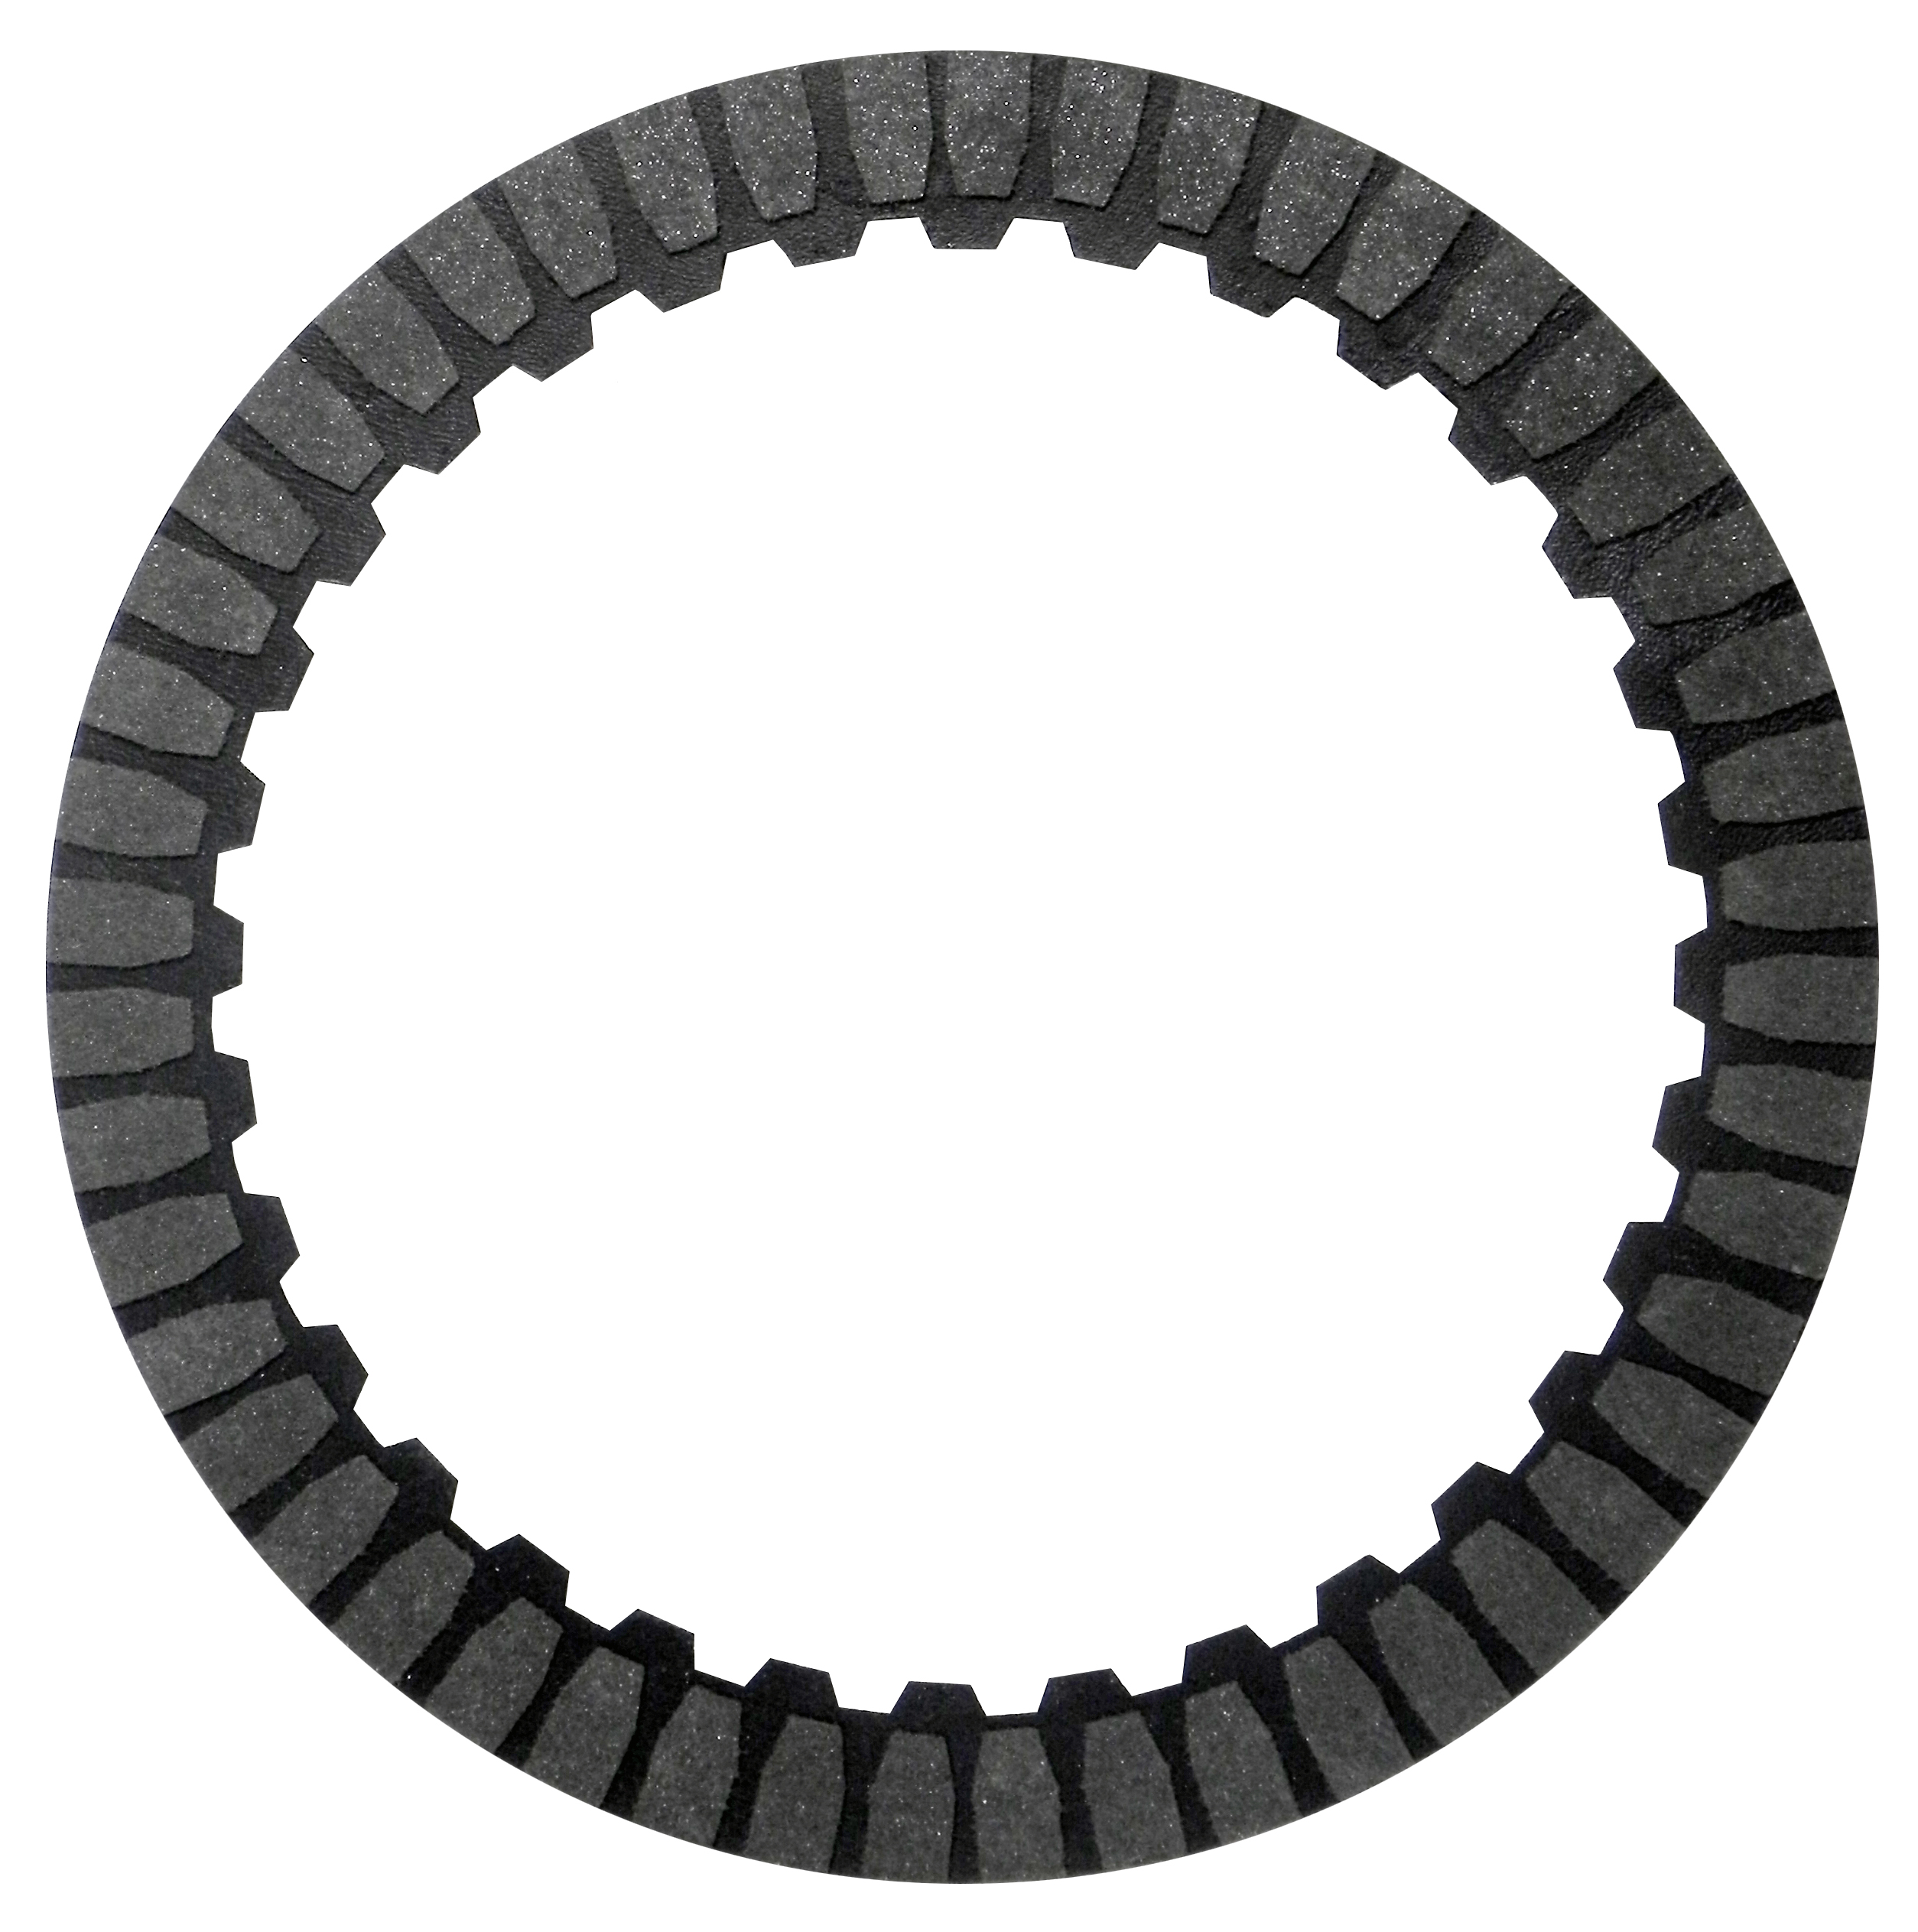 6R140 High Energy Friction Clutch Plate